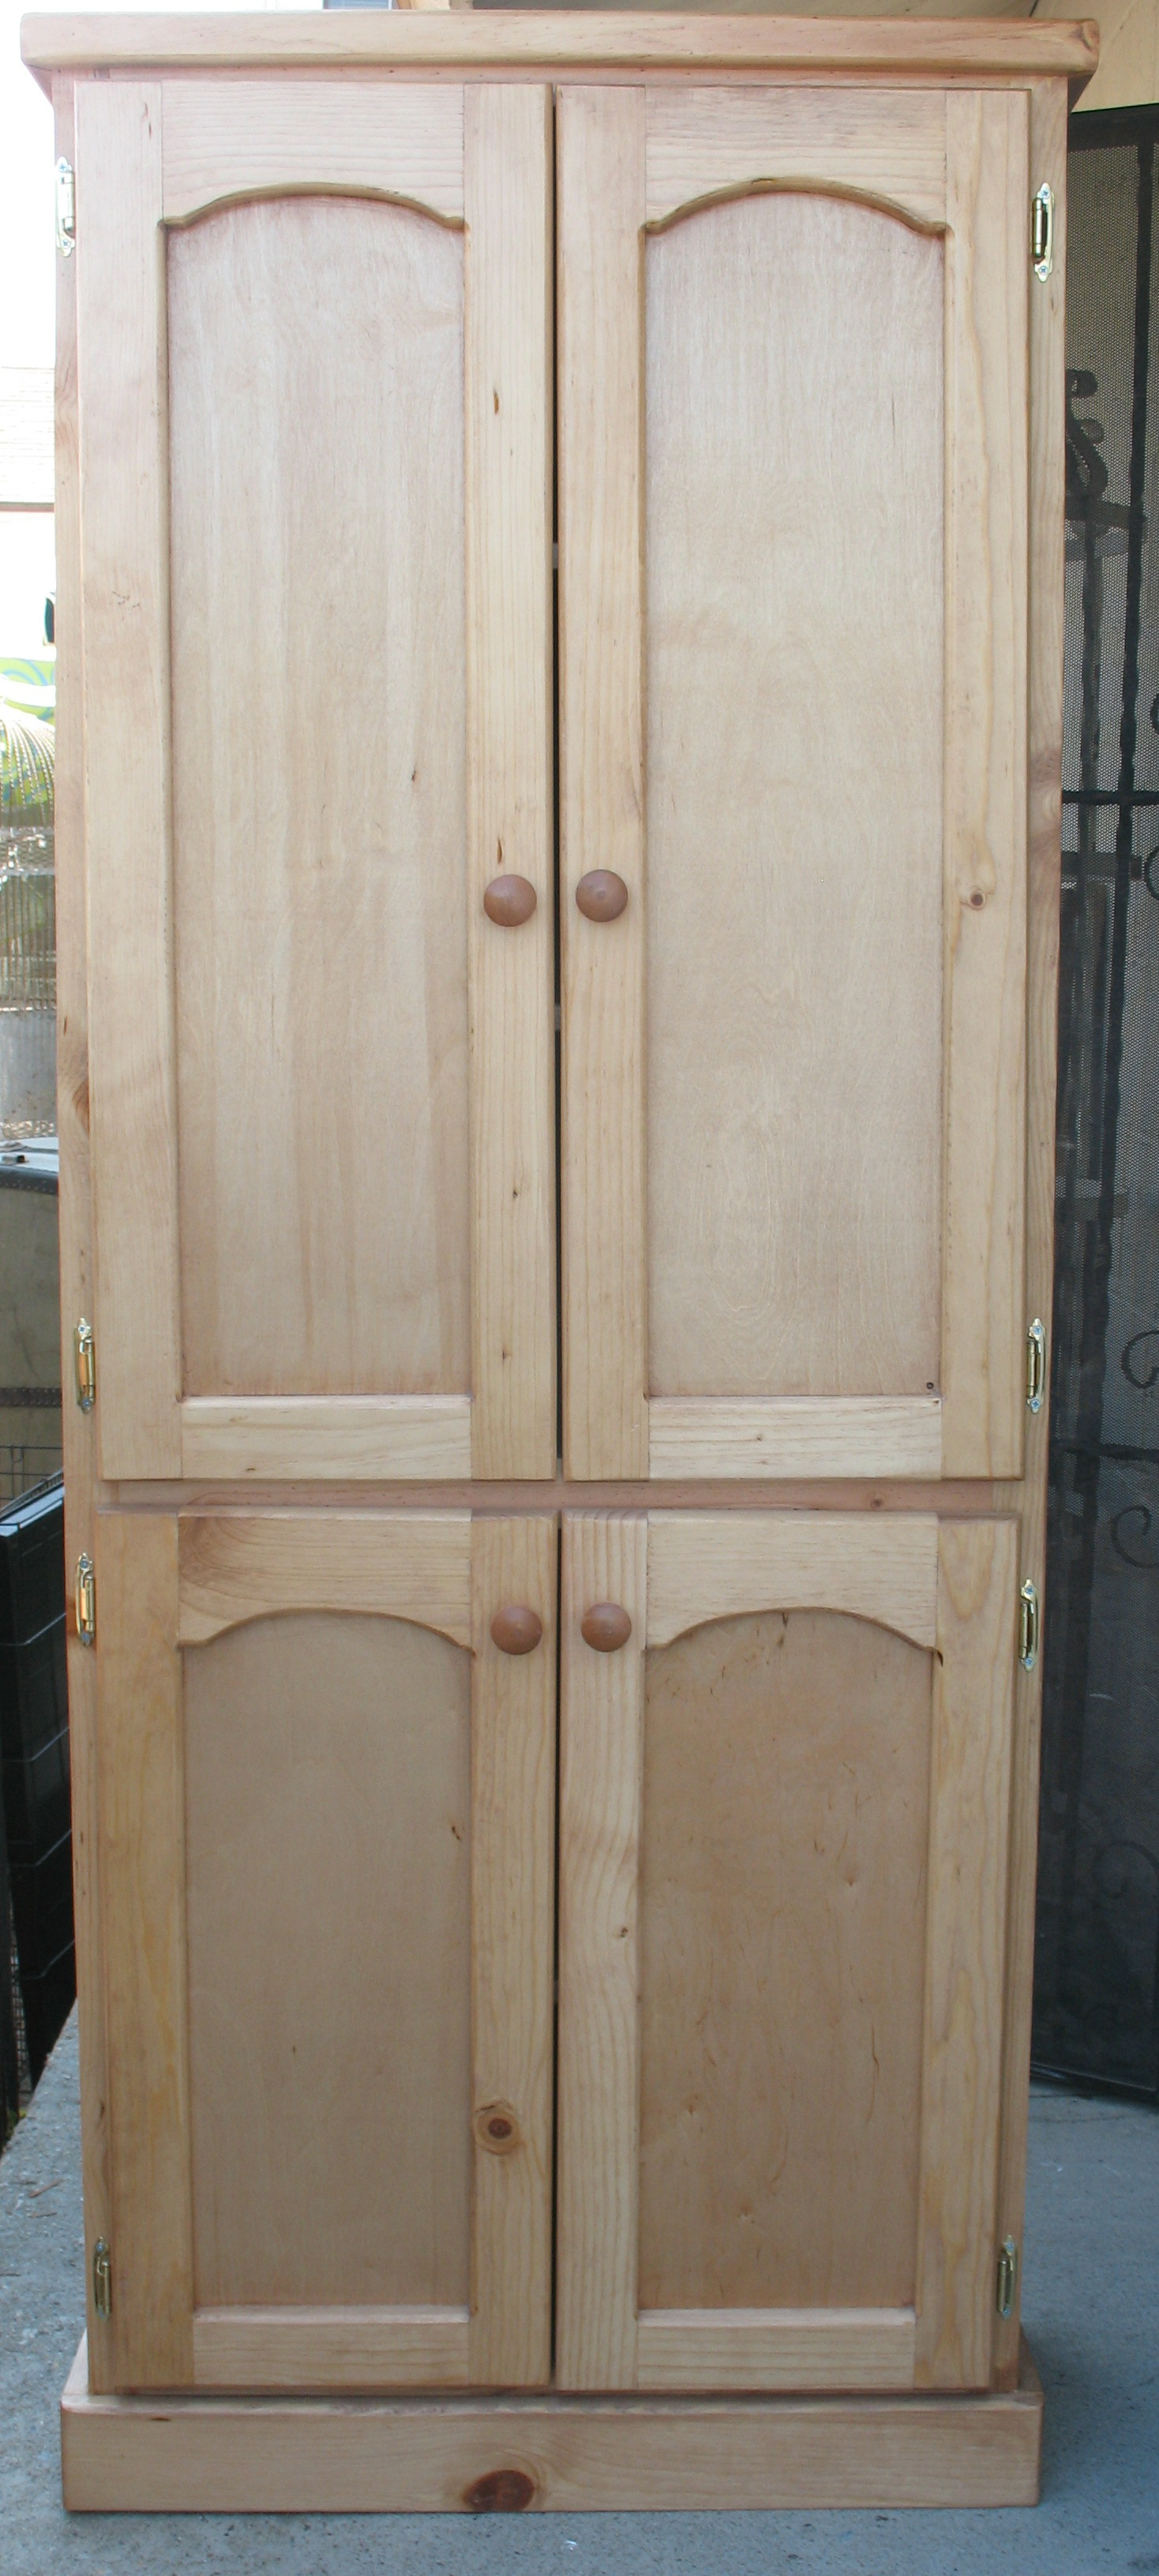 Ready Made Cabinets : Ready made cabinet with doors